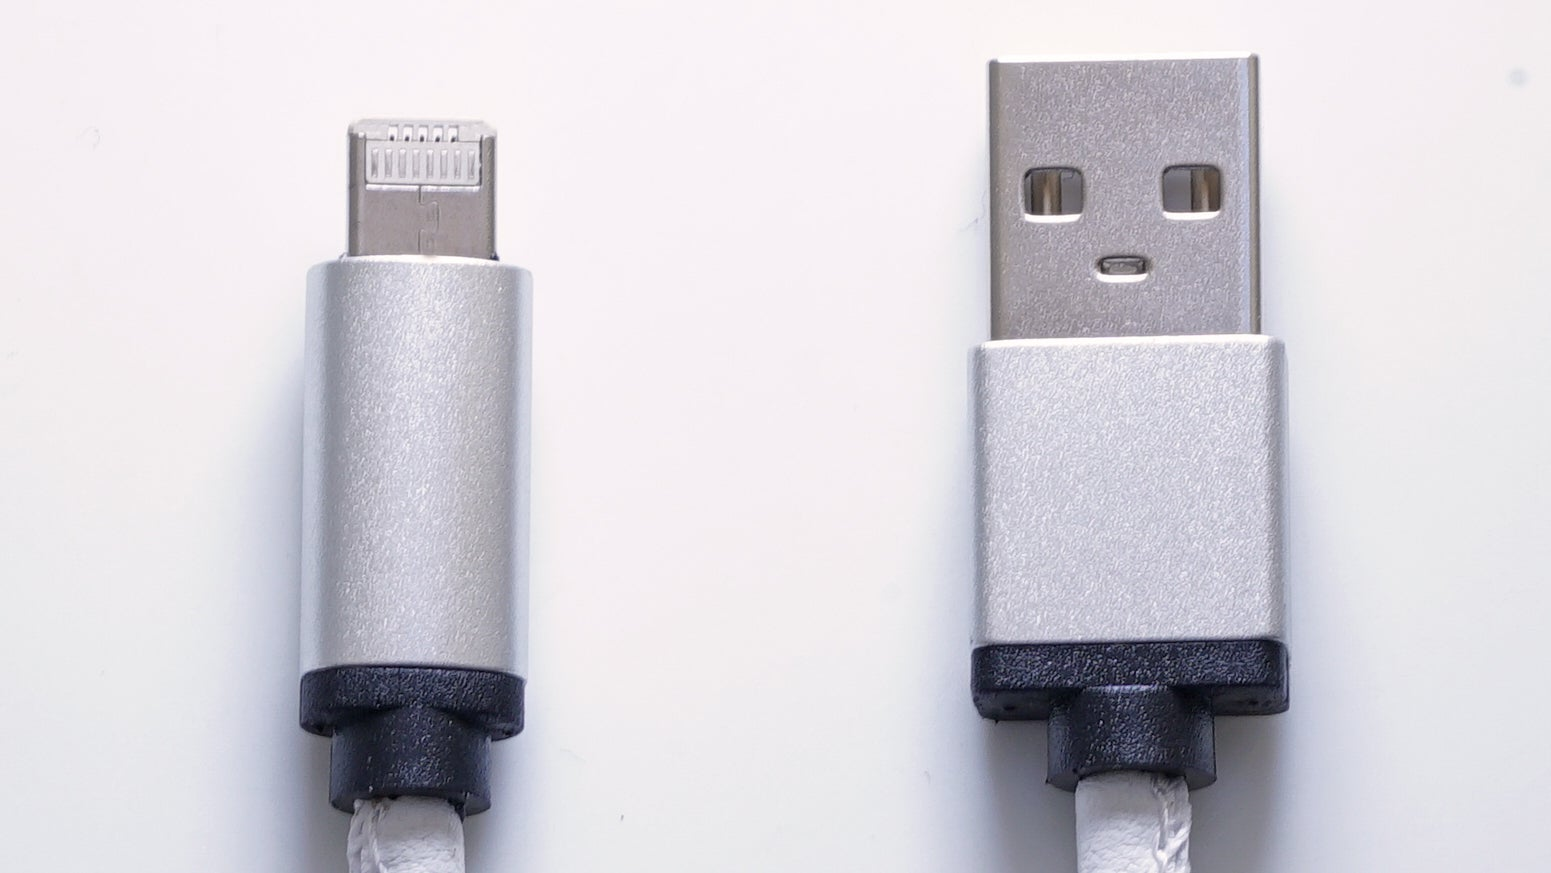 Genius Charging Cable Works on Both iOS and Android Devices at the Same Time